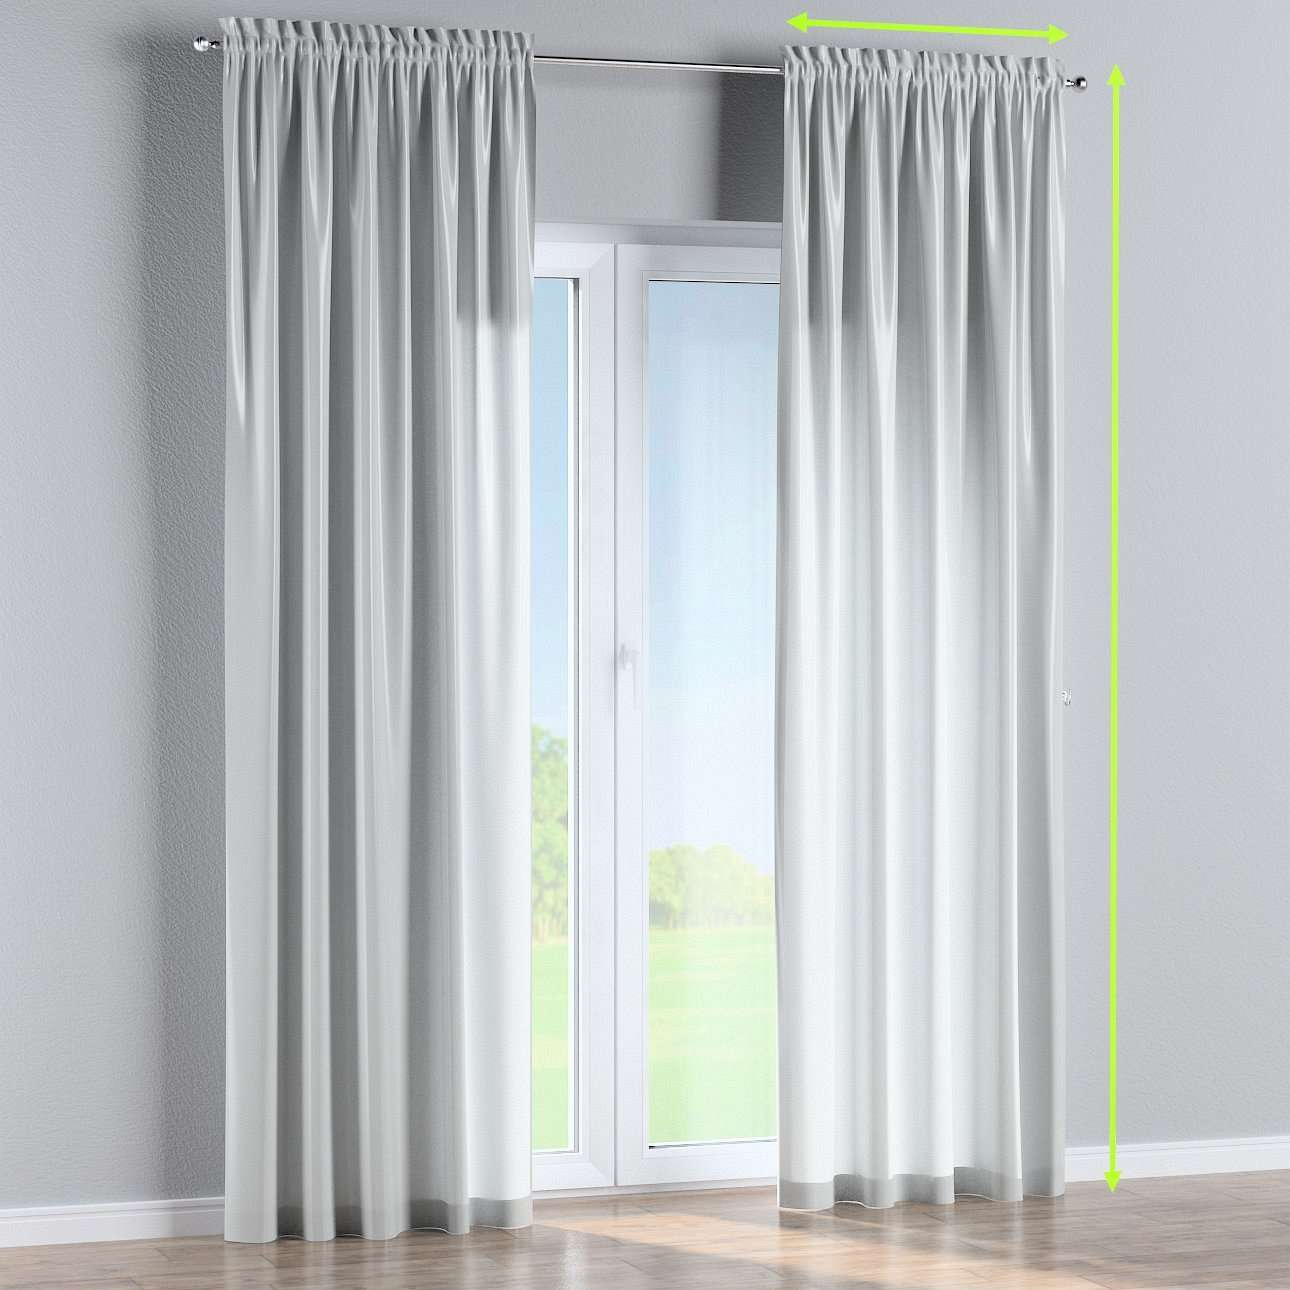 Slot and frill lined curtains in collection Damasco, fabric: 141-77